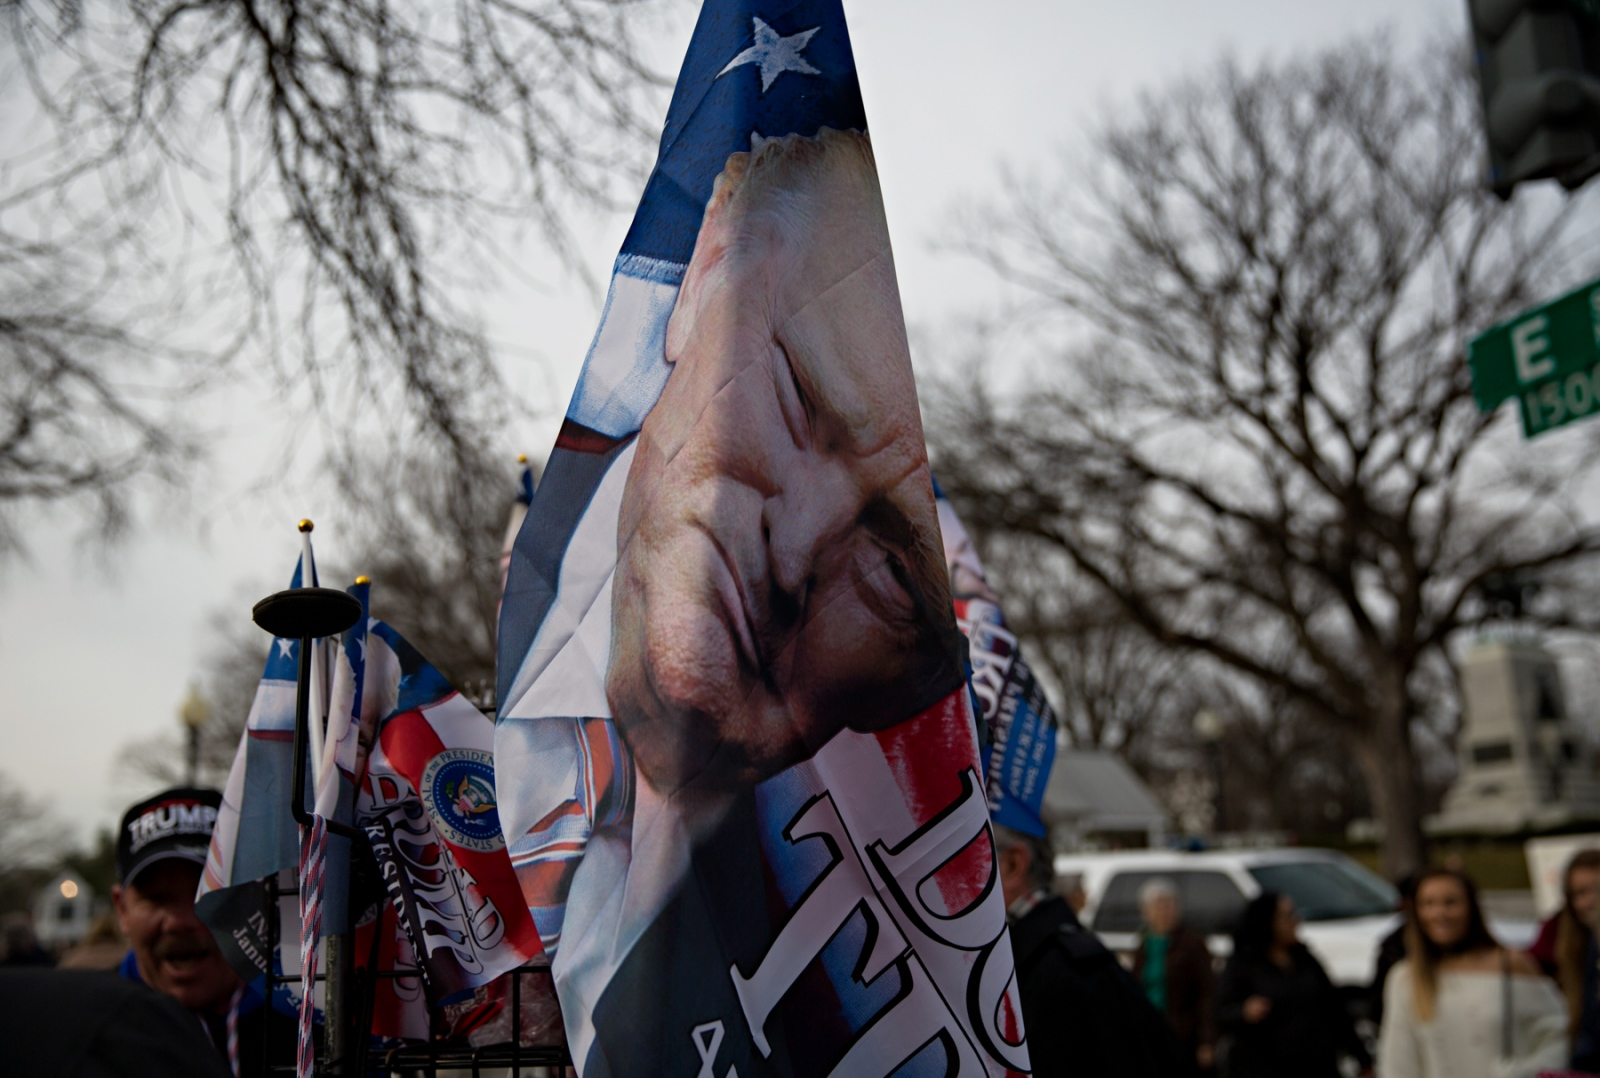 January 19, 2017 - Washington, DC, United States: Donald Trump flags for sale during the Inauguration weekend. On the day of inauguration of the 45th President of the United States, the picture of Donald Trump could be found on pretty much anything upon which a picture could be printed. Here, the ominous image of the President on a flag.